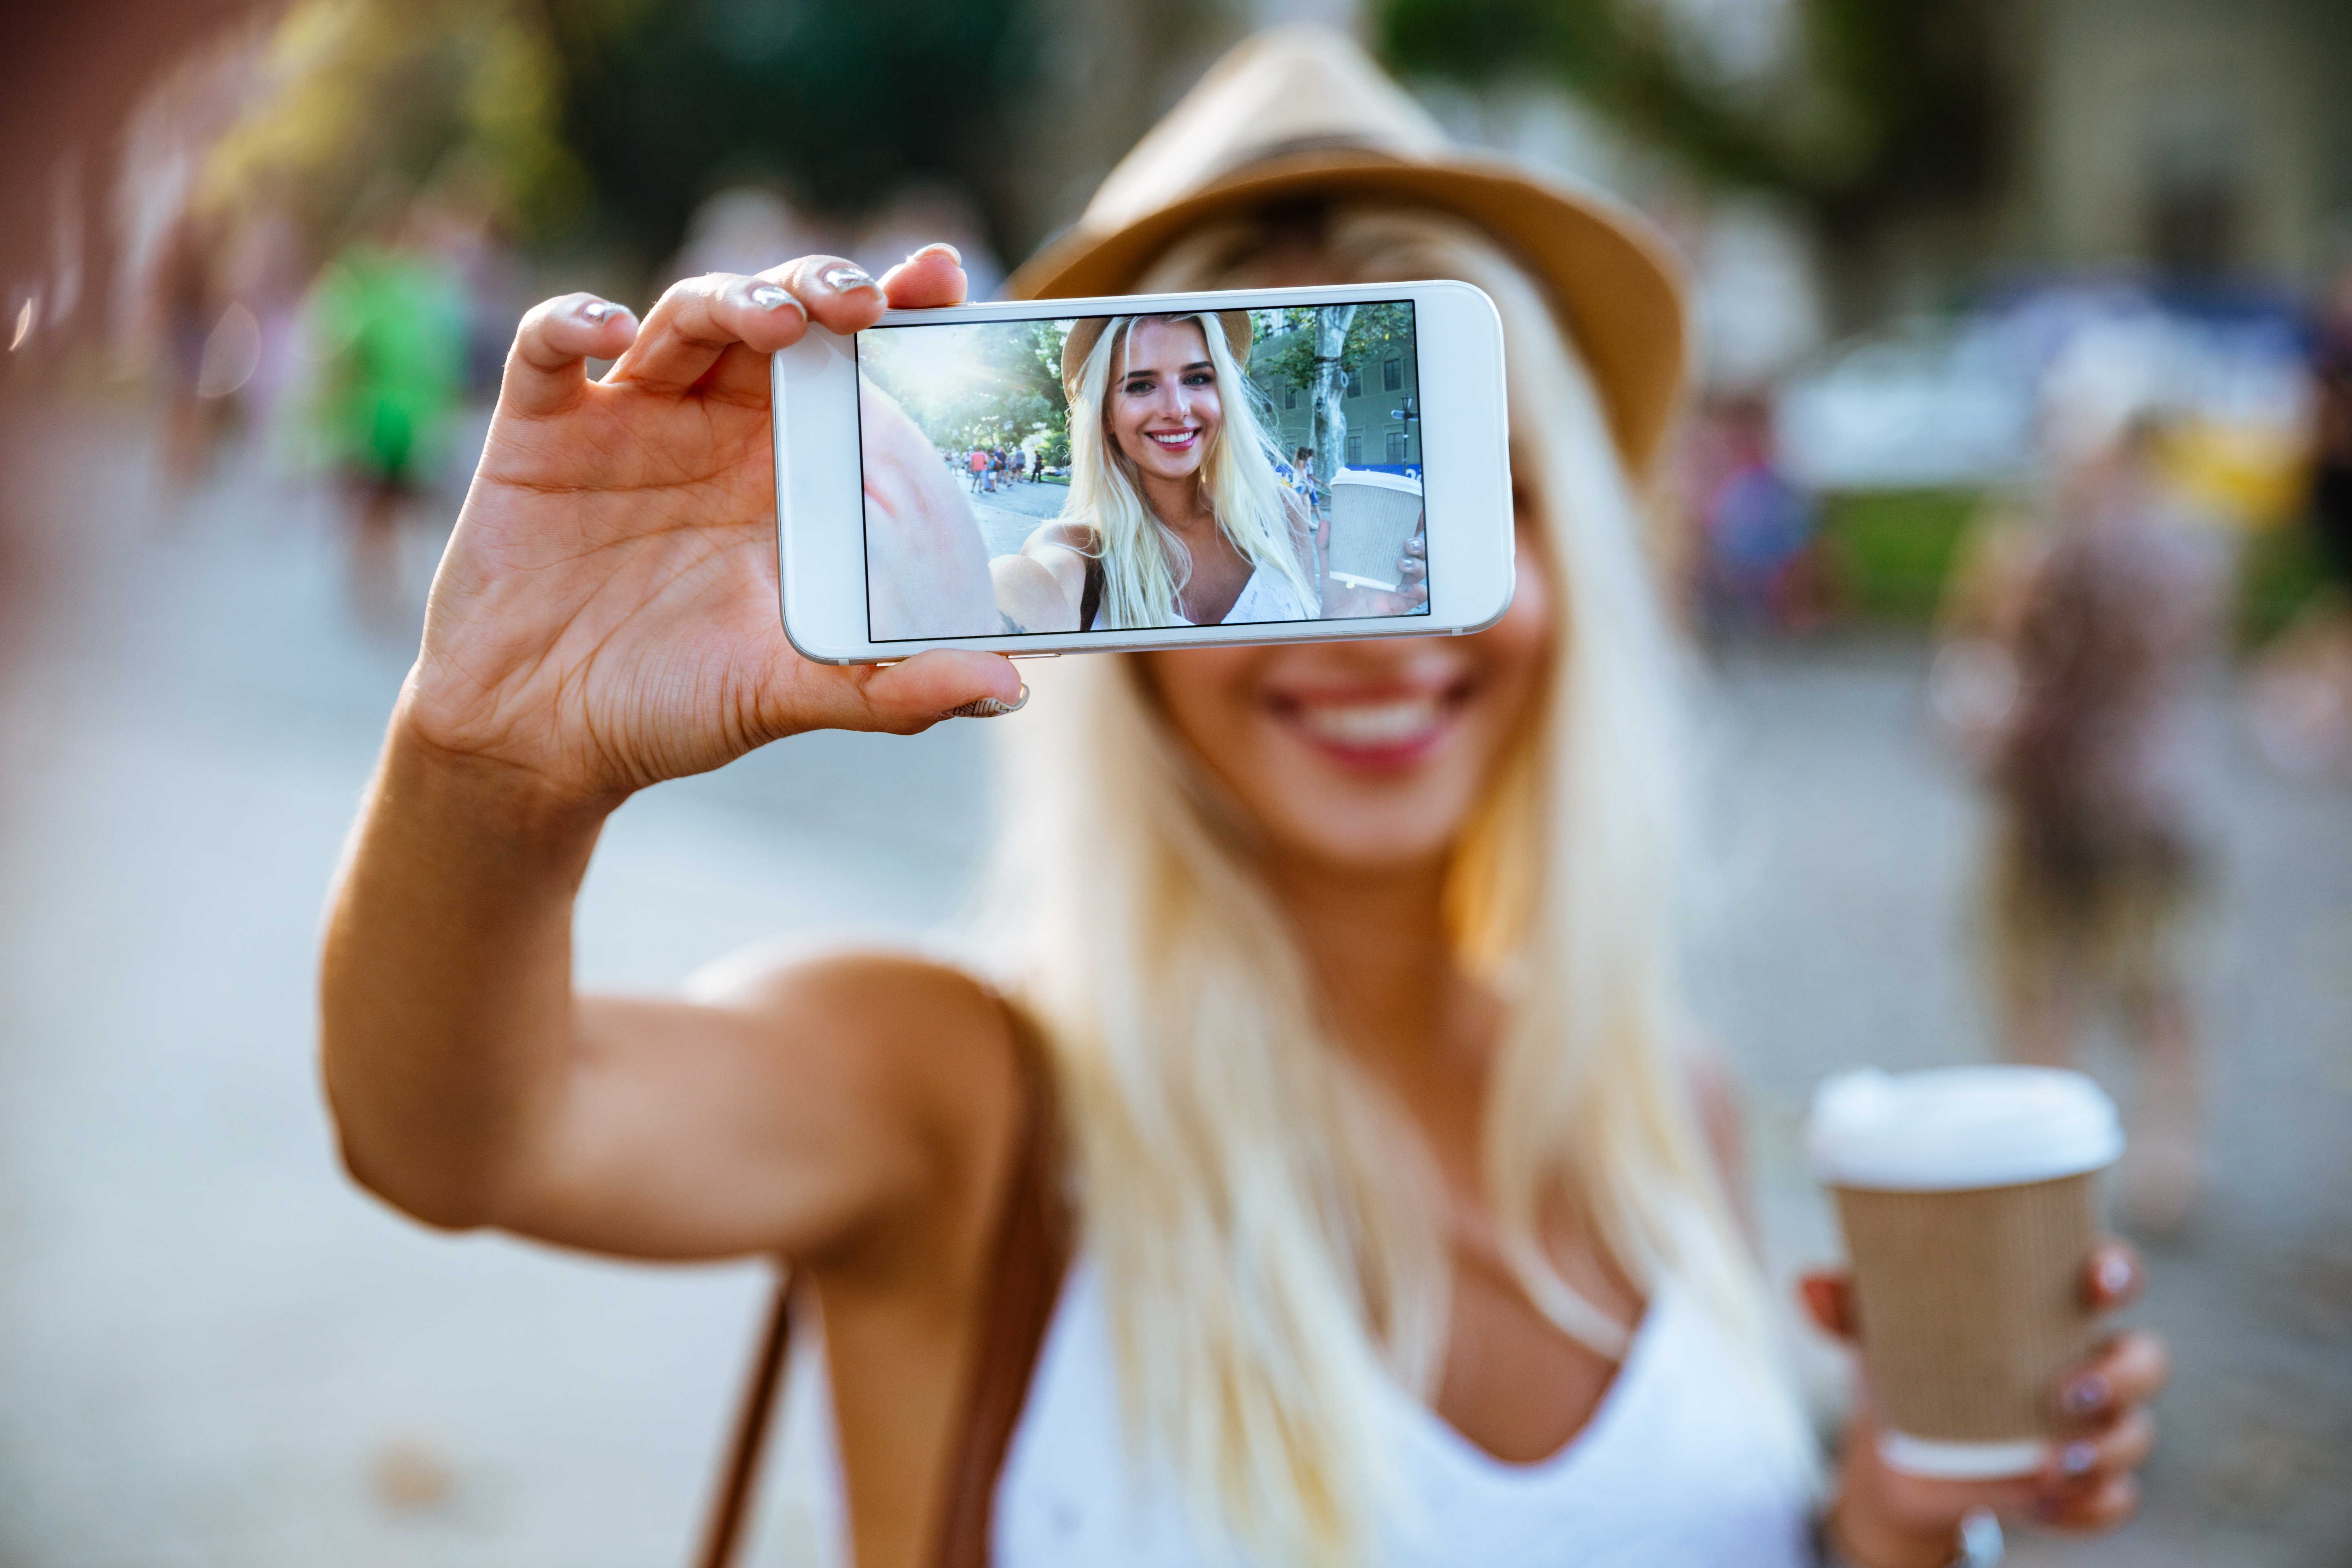 How to make the most creative selfie? [of ideas]